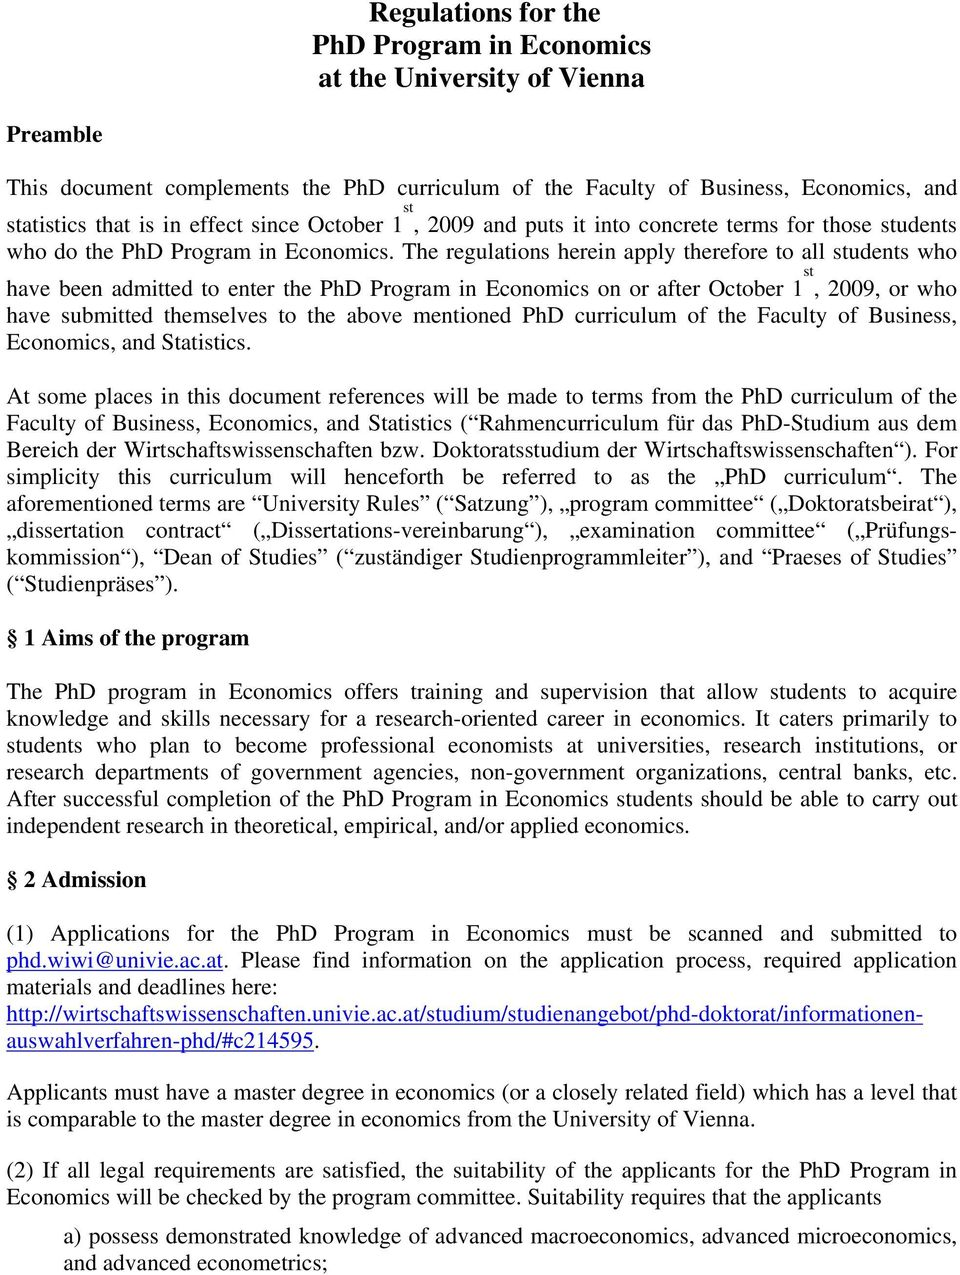 The regulations herein apply therefore to all students who have been admitted to enter the PhD Program in Economics on or after October 1 st, 2009, or who have submitted themselves to the above